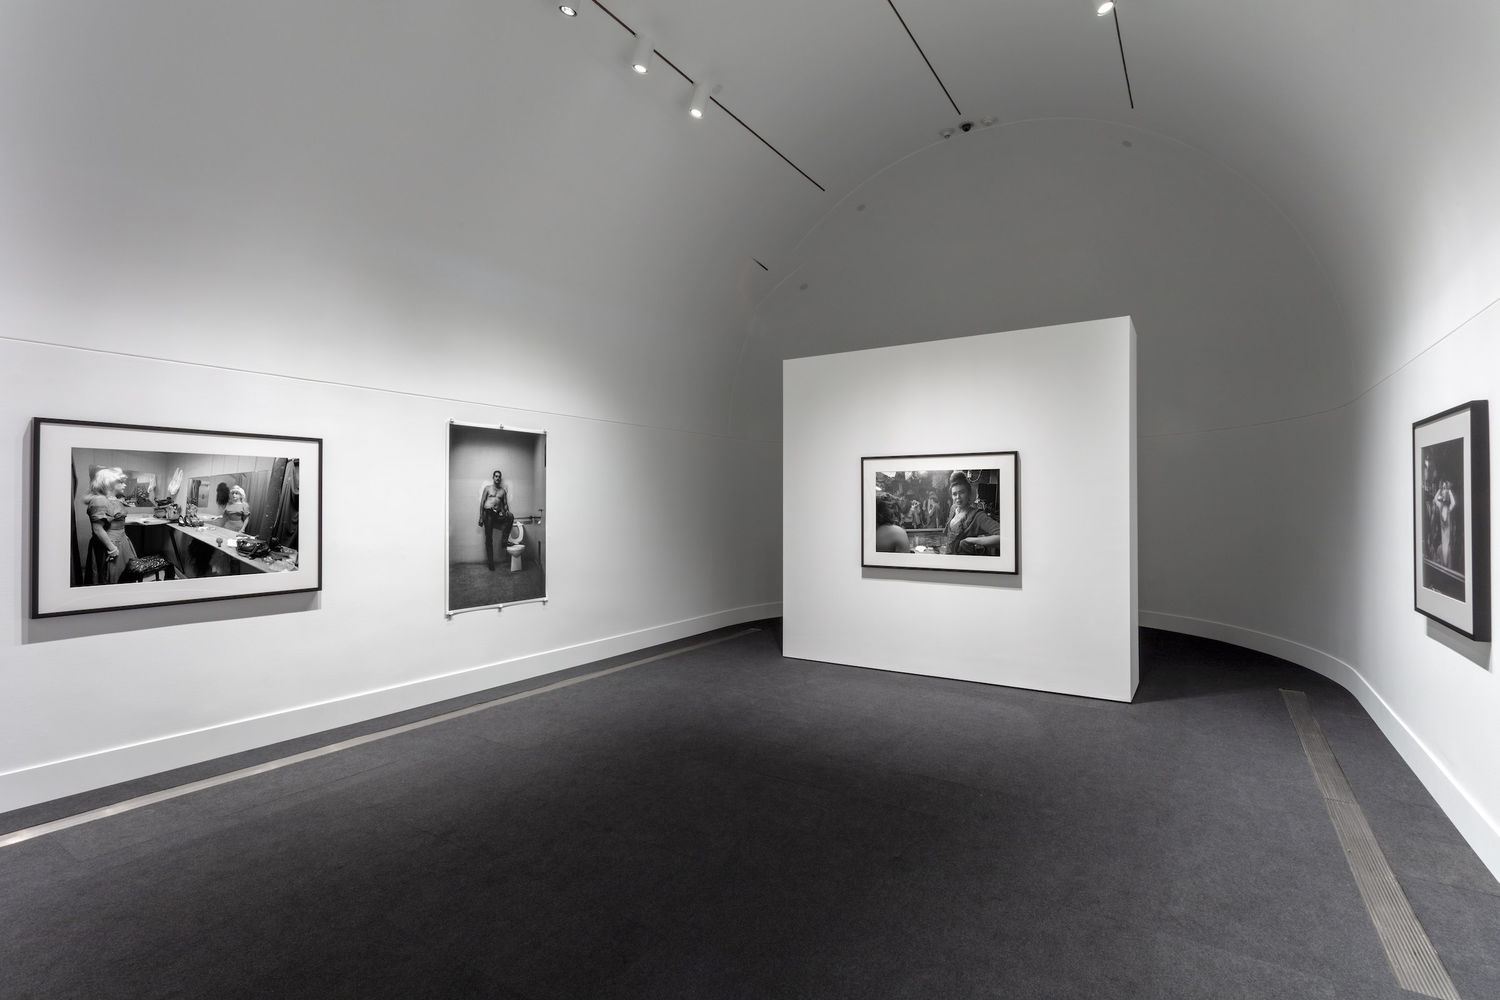 A white gallery with a curved back wall with one black and white photograph hanging on the central, freestanding wall, two black and white photographs on the left wall, and one photograph on the right wall.